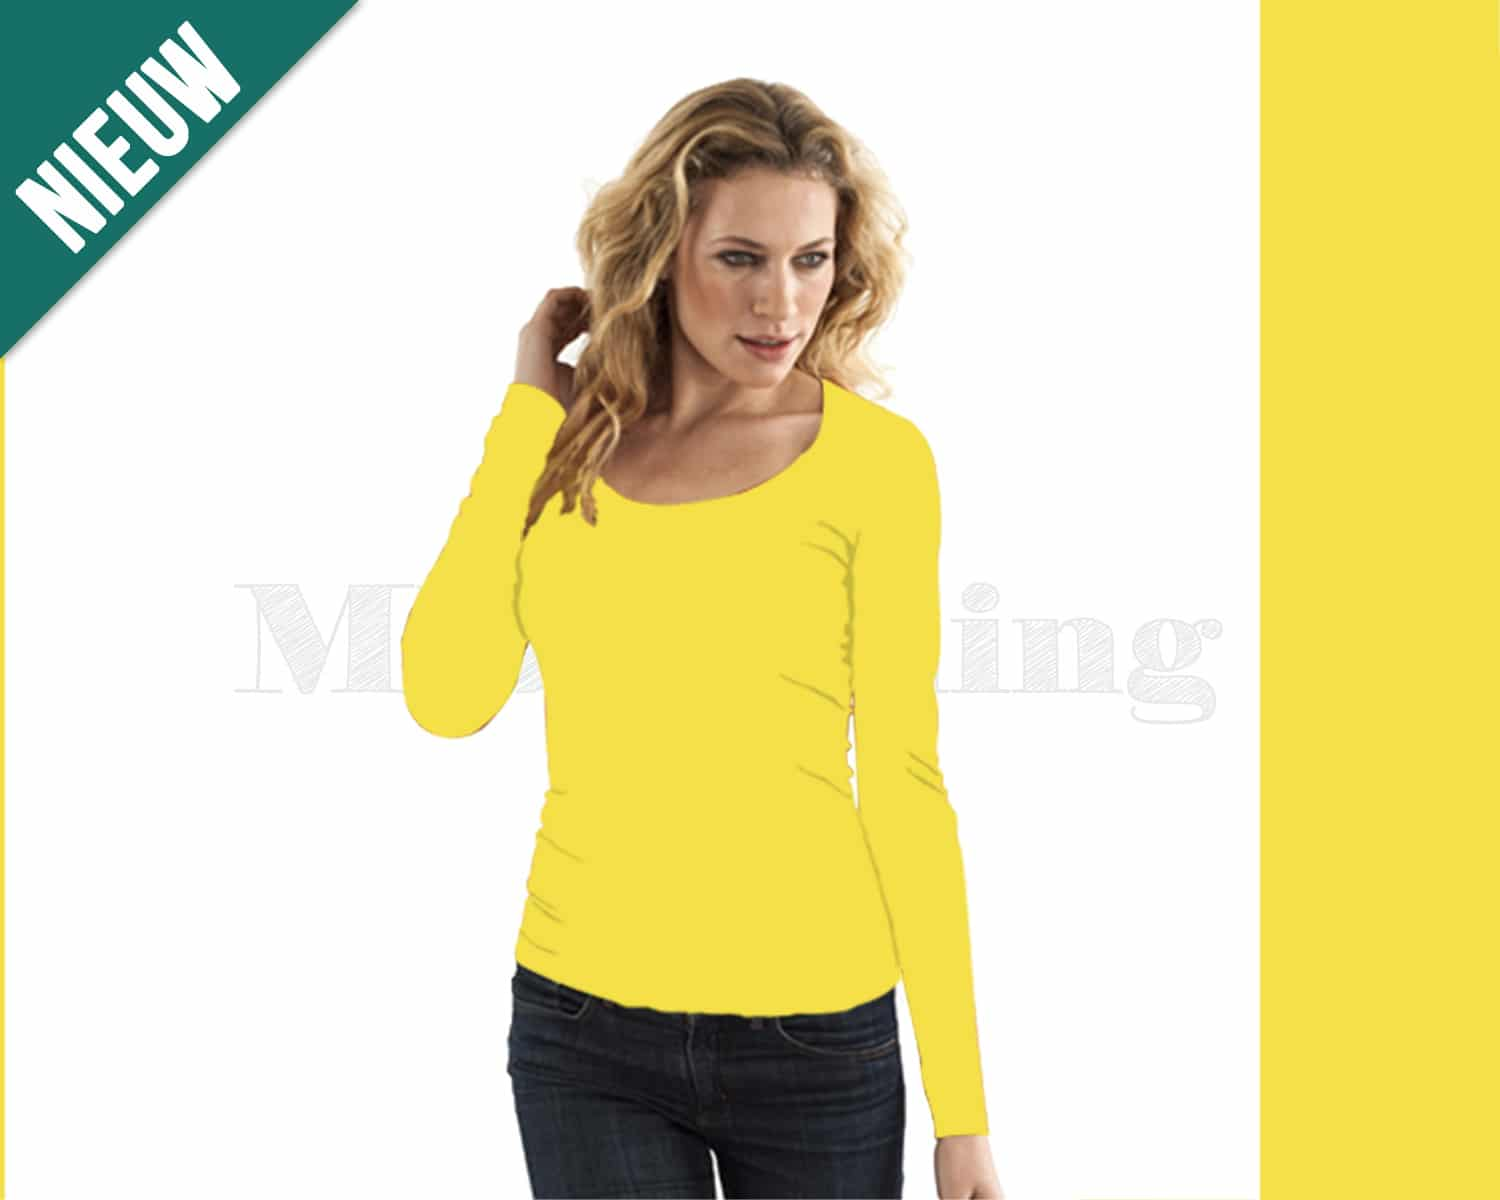 Slippely shirt lange mouw viscose 17730 Yellow (geel)